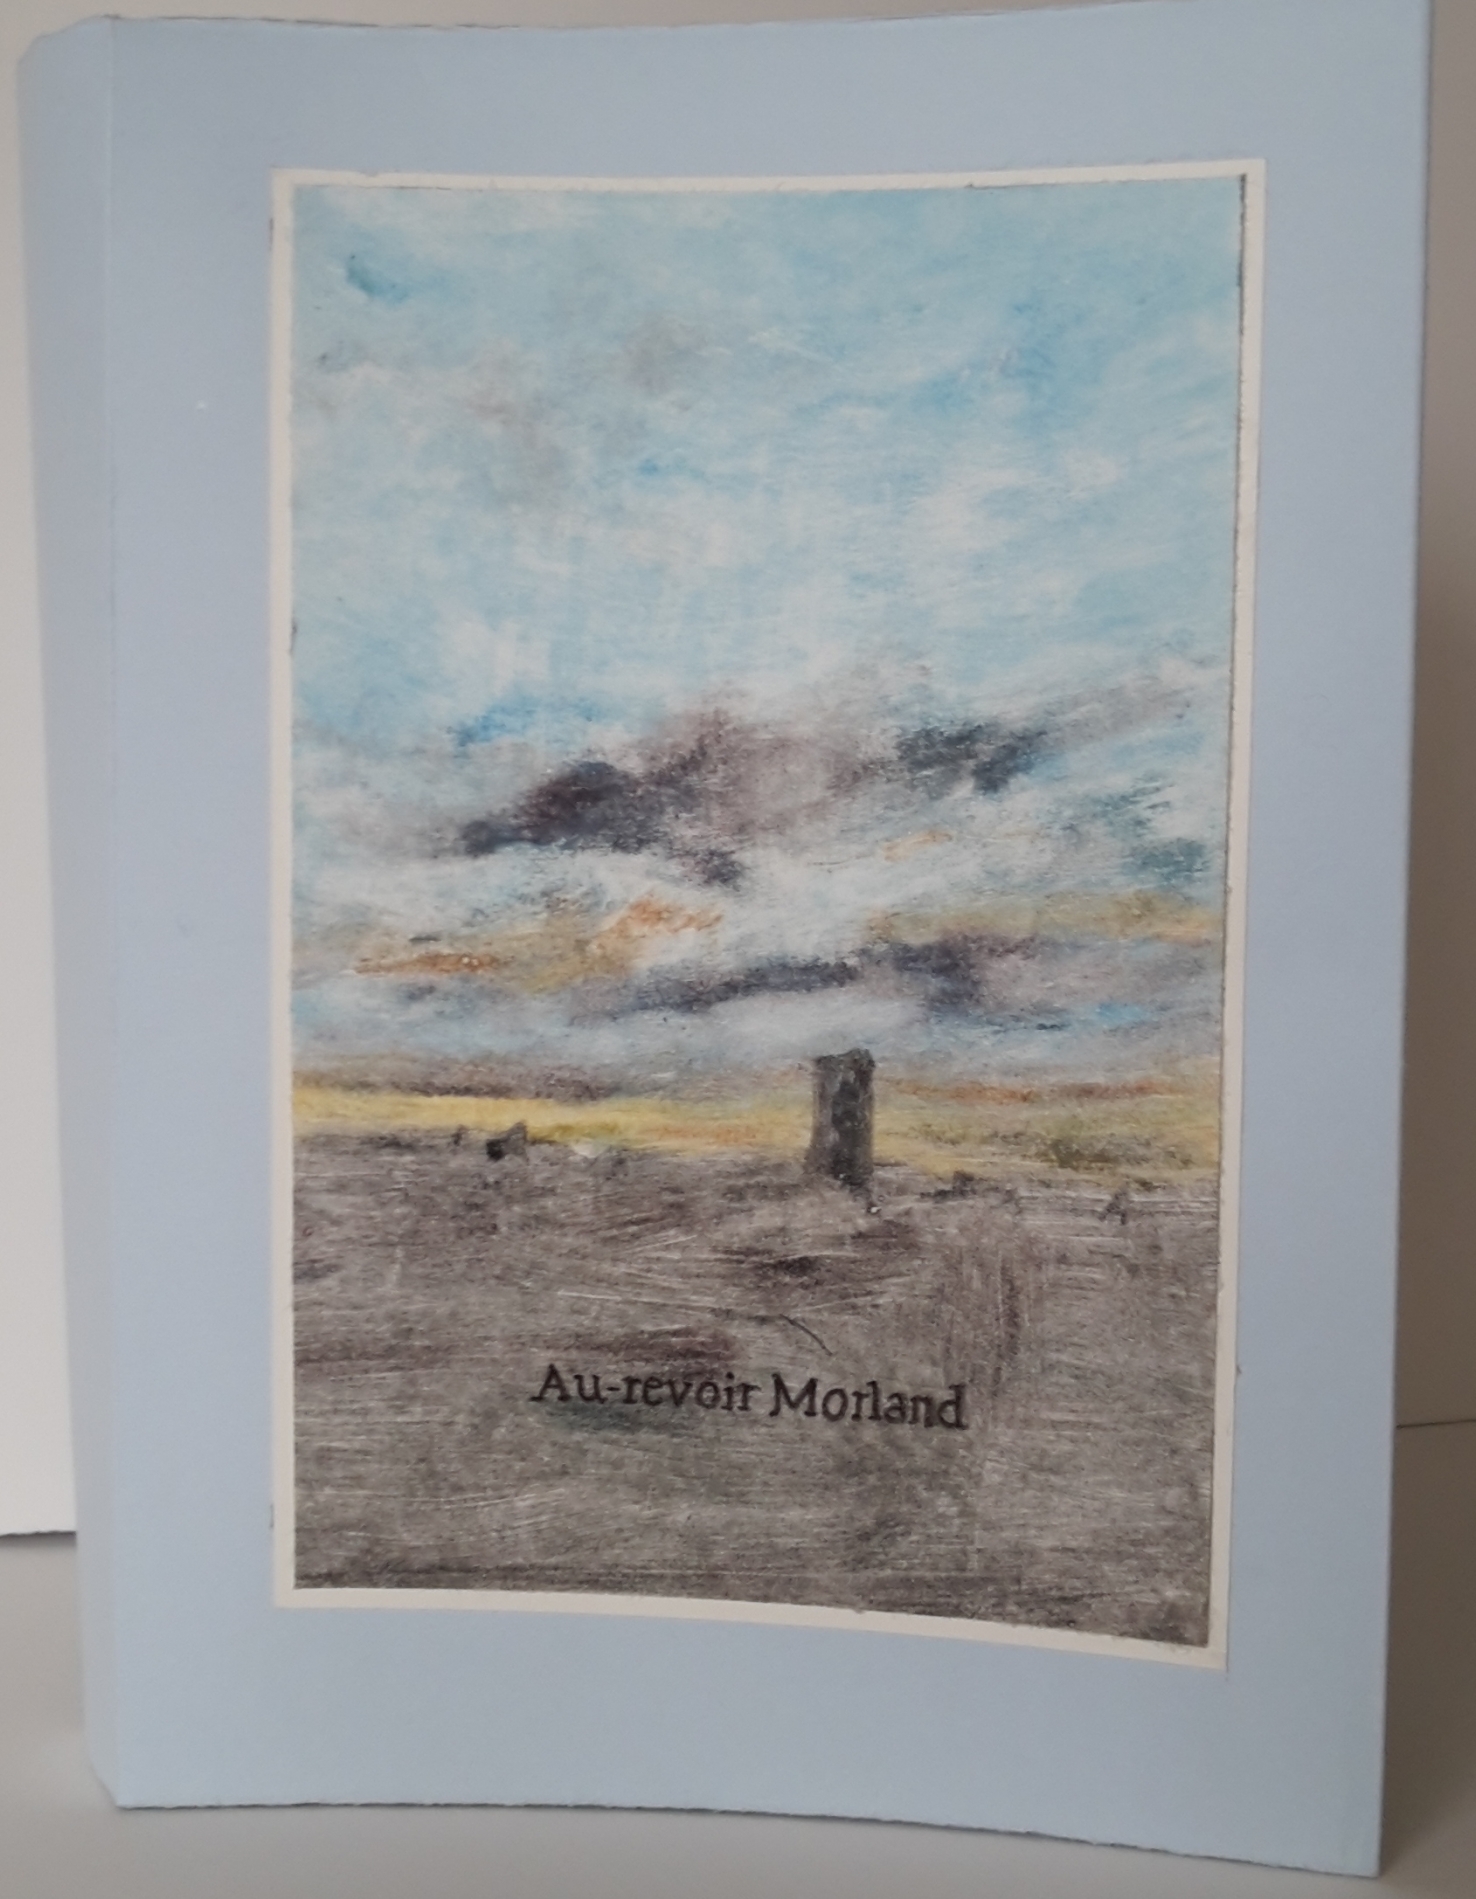 Adieu Morland, couverture, monotype